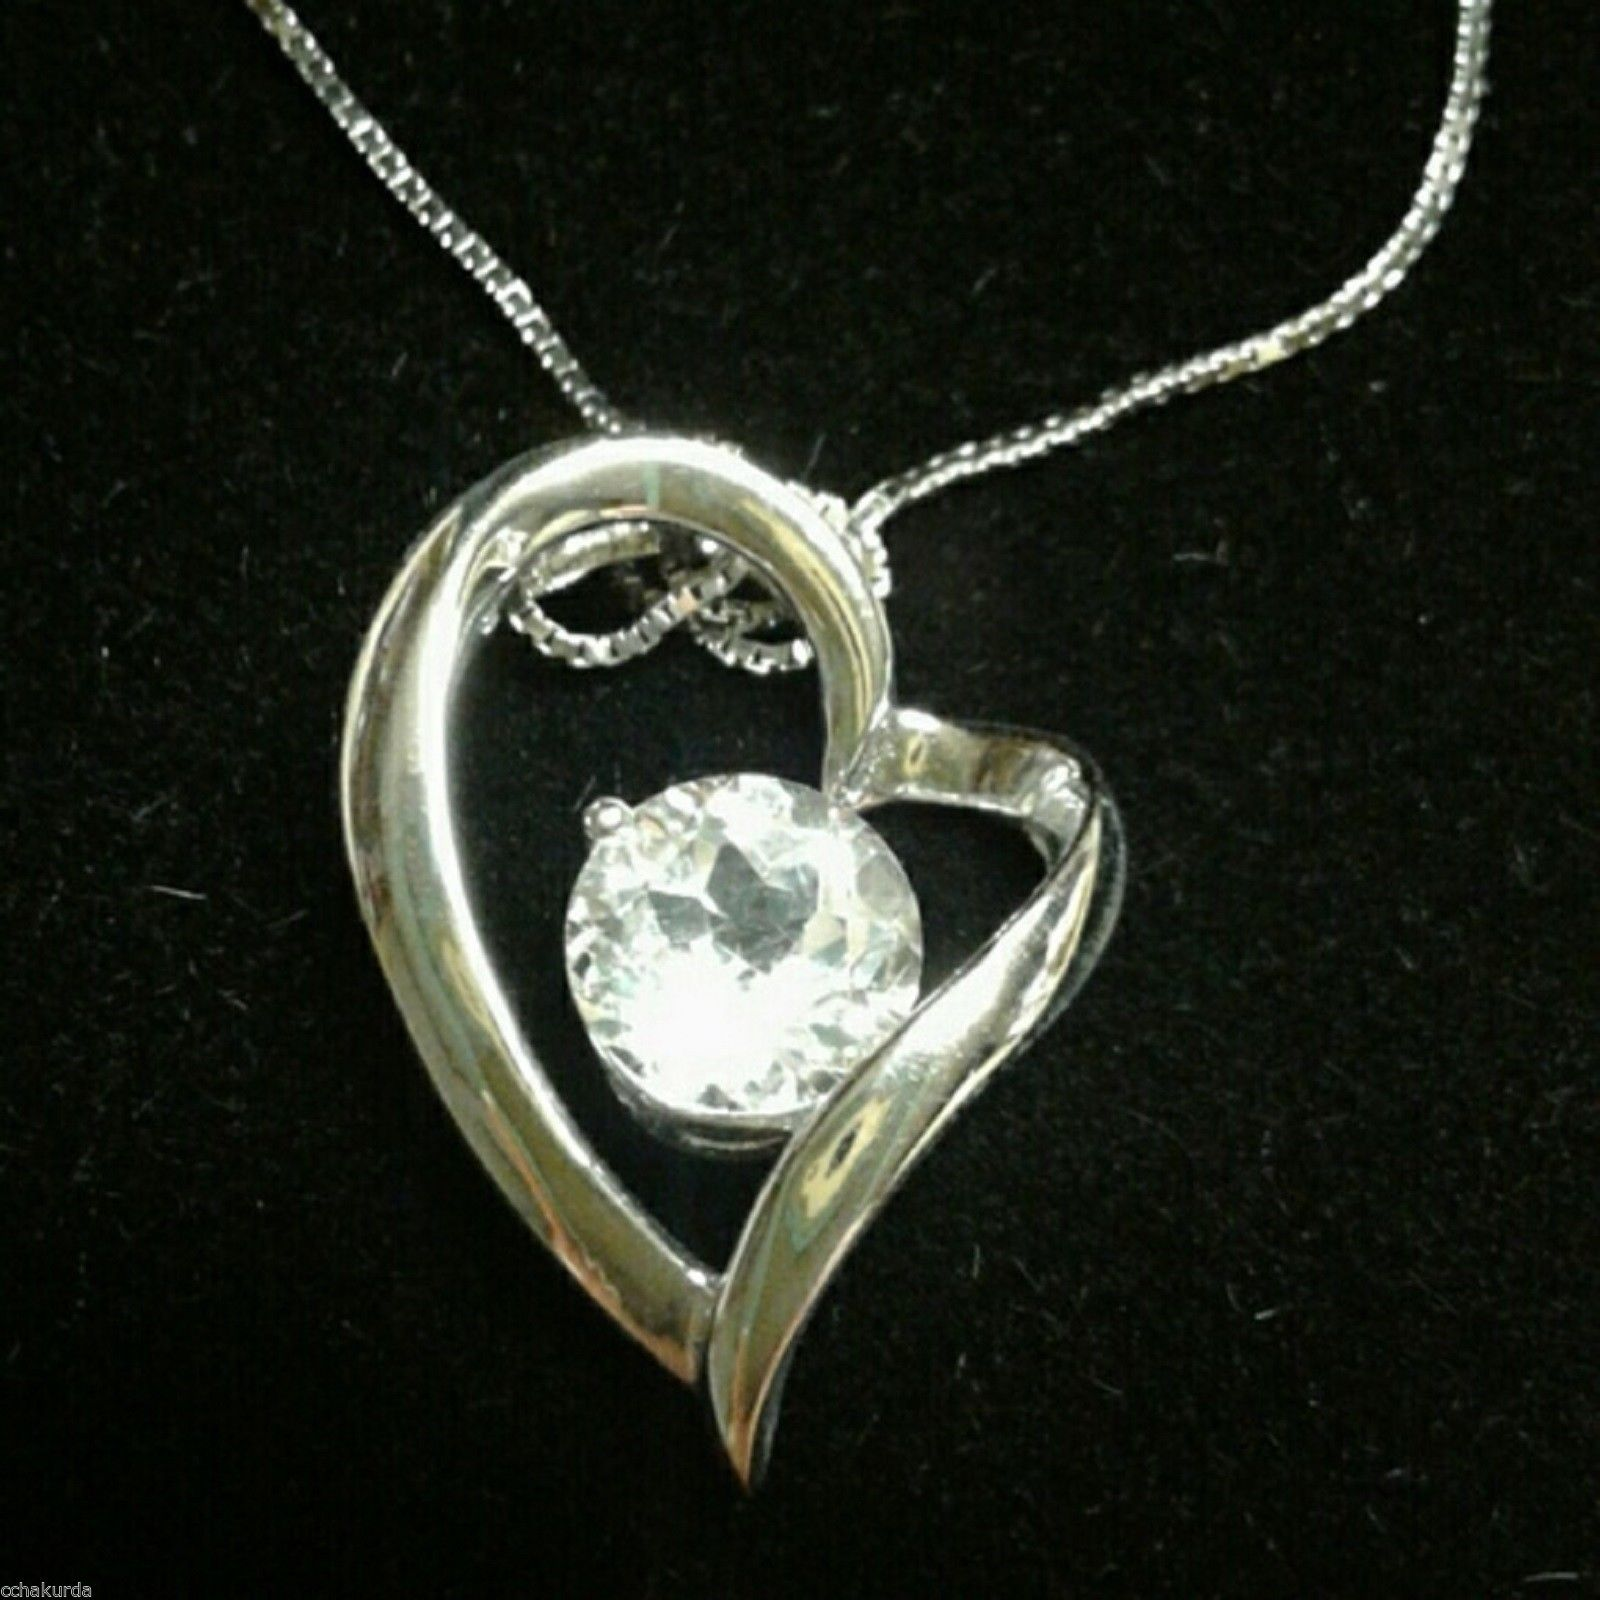 White Topaz Necklace Heart Pendant Sterling Silver NEW Boxed